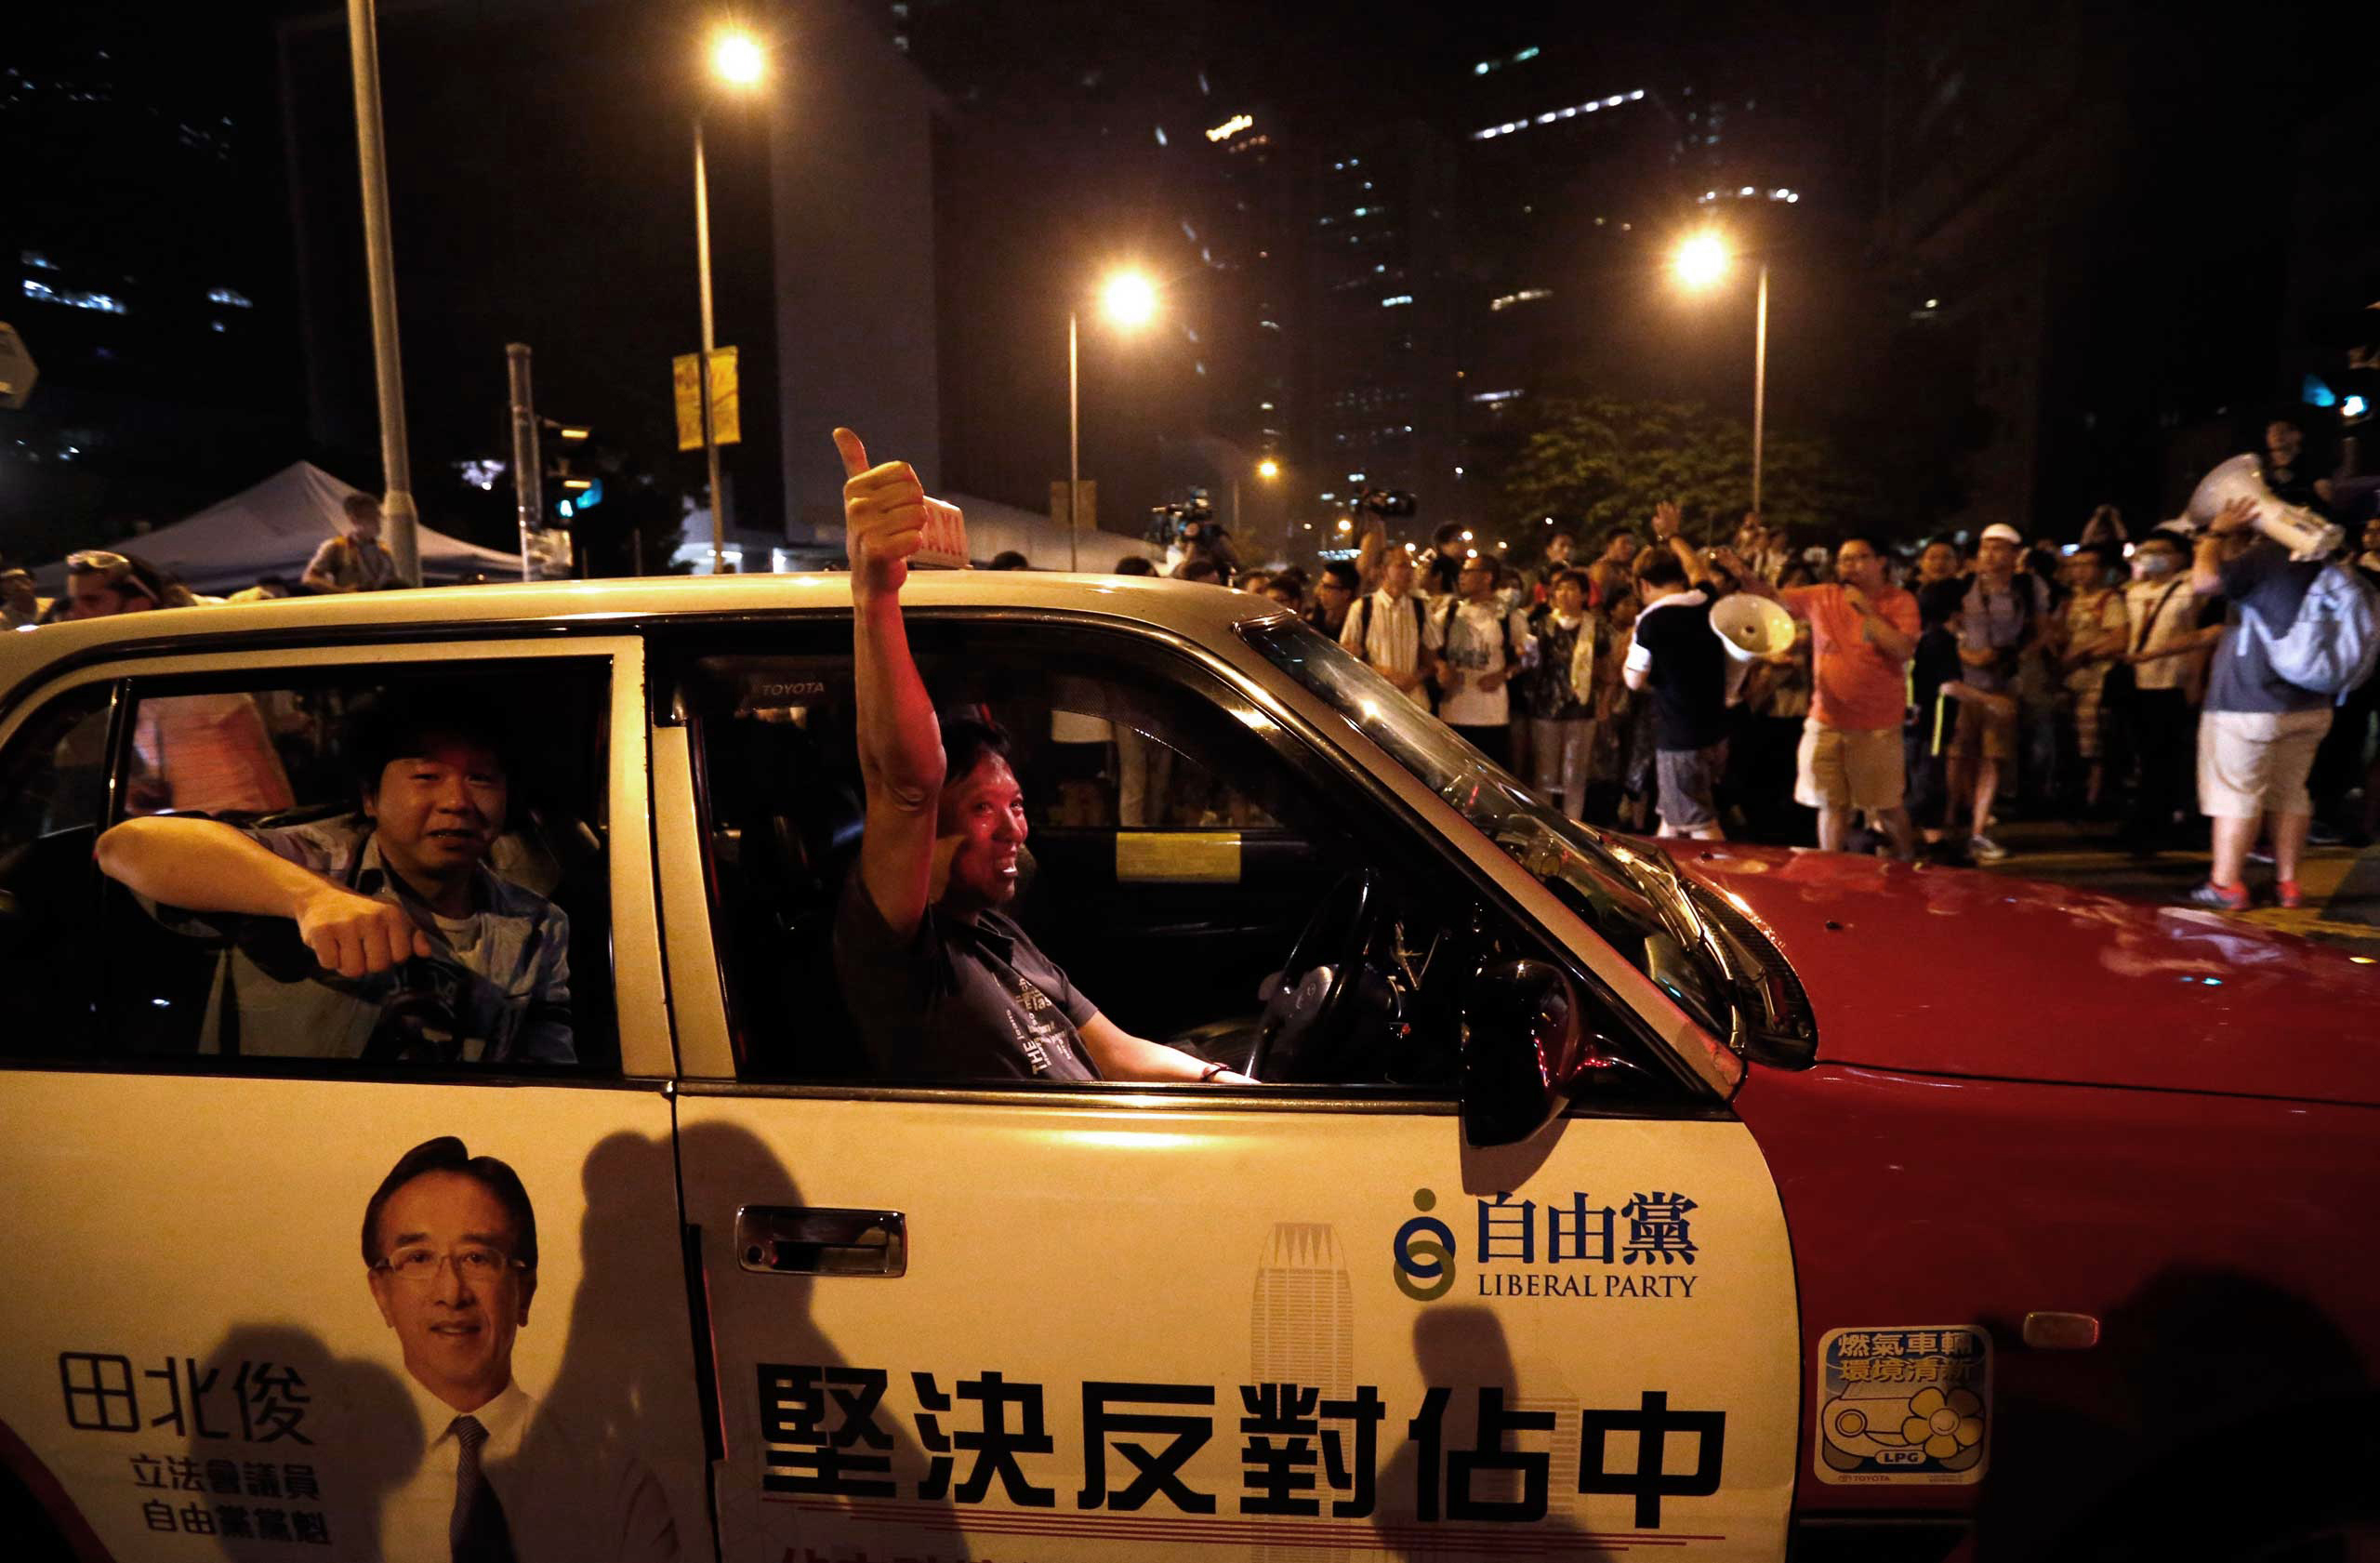 A taxi driver gives a thumbs up to pro-democracy protesters as he drives past the protest site in front of Hong Kong's Chief Executive Leung Chun-ying's office, early on Oct. 3, 2014 in Hong Kong.